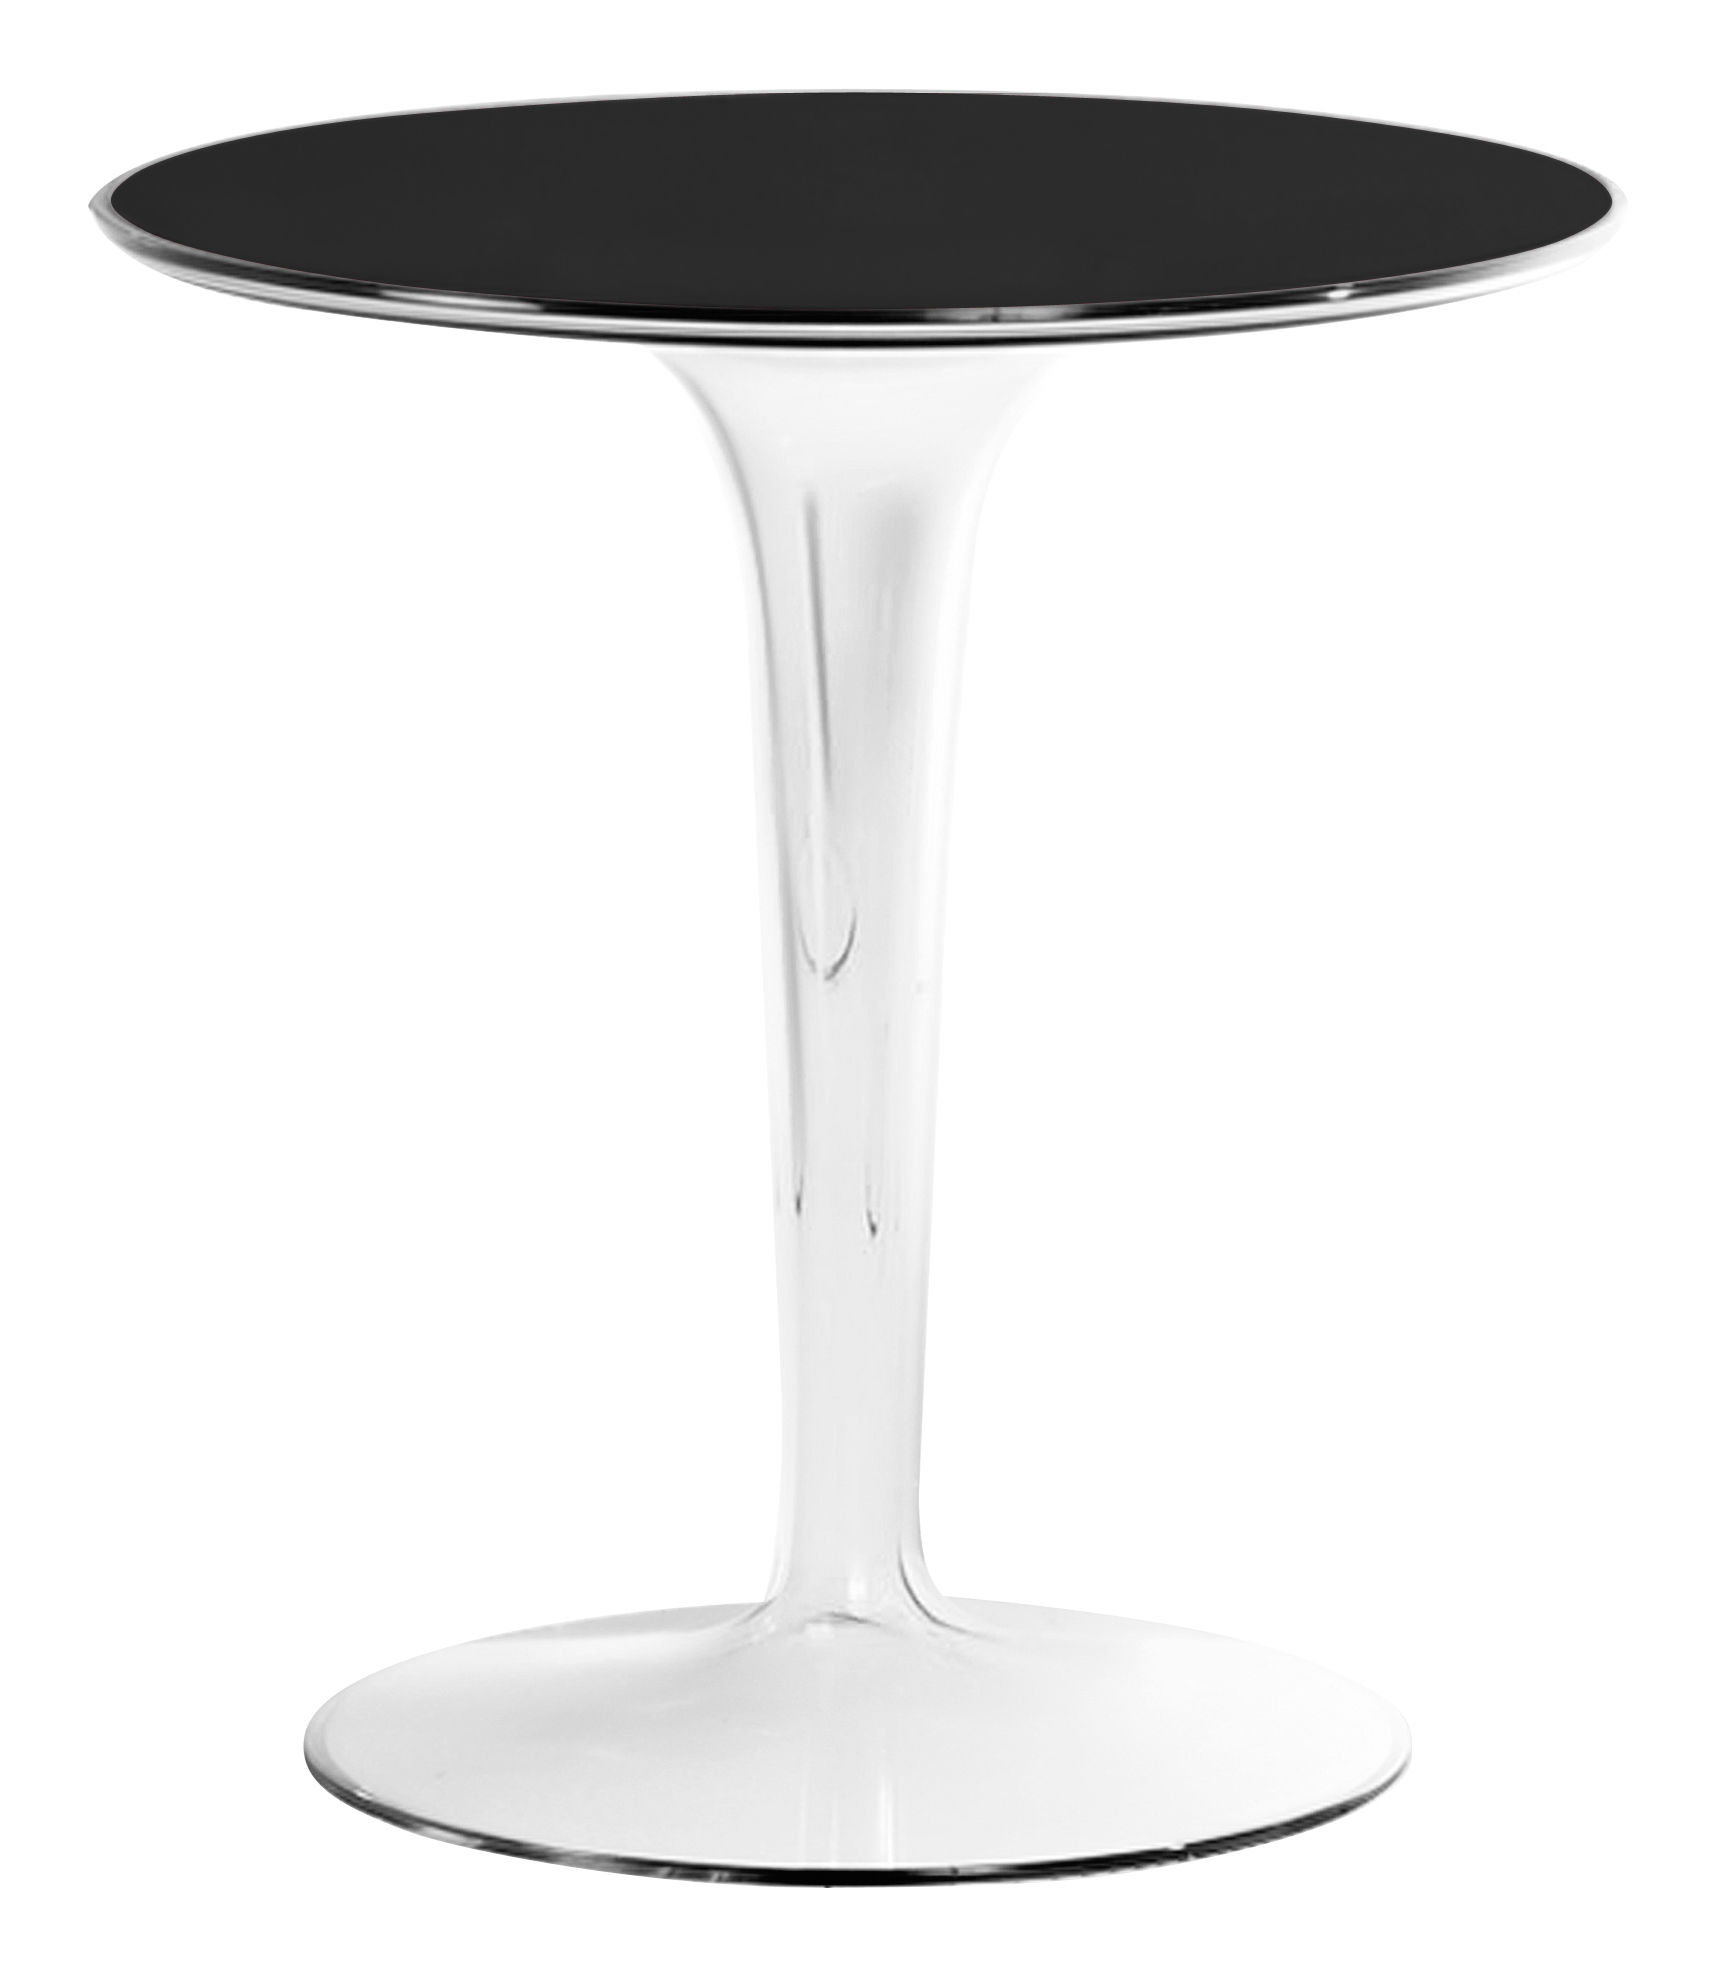 Furniture - Coffee Tables - Tip Top End table by Kartell - Glossy Black - PMMA